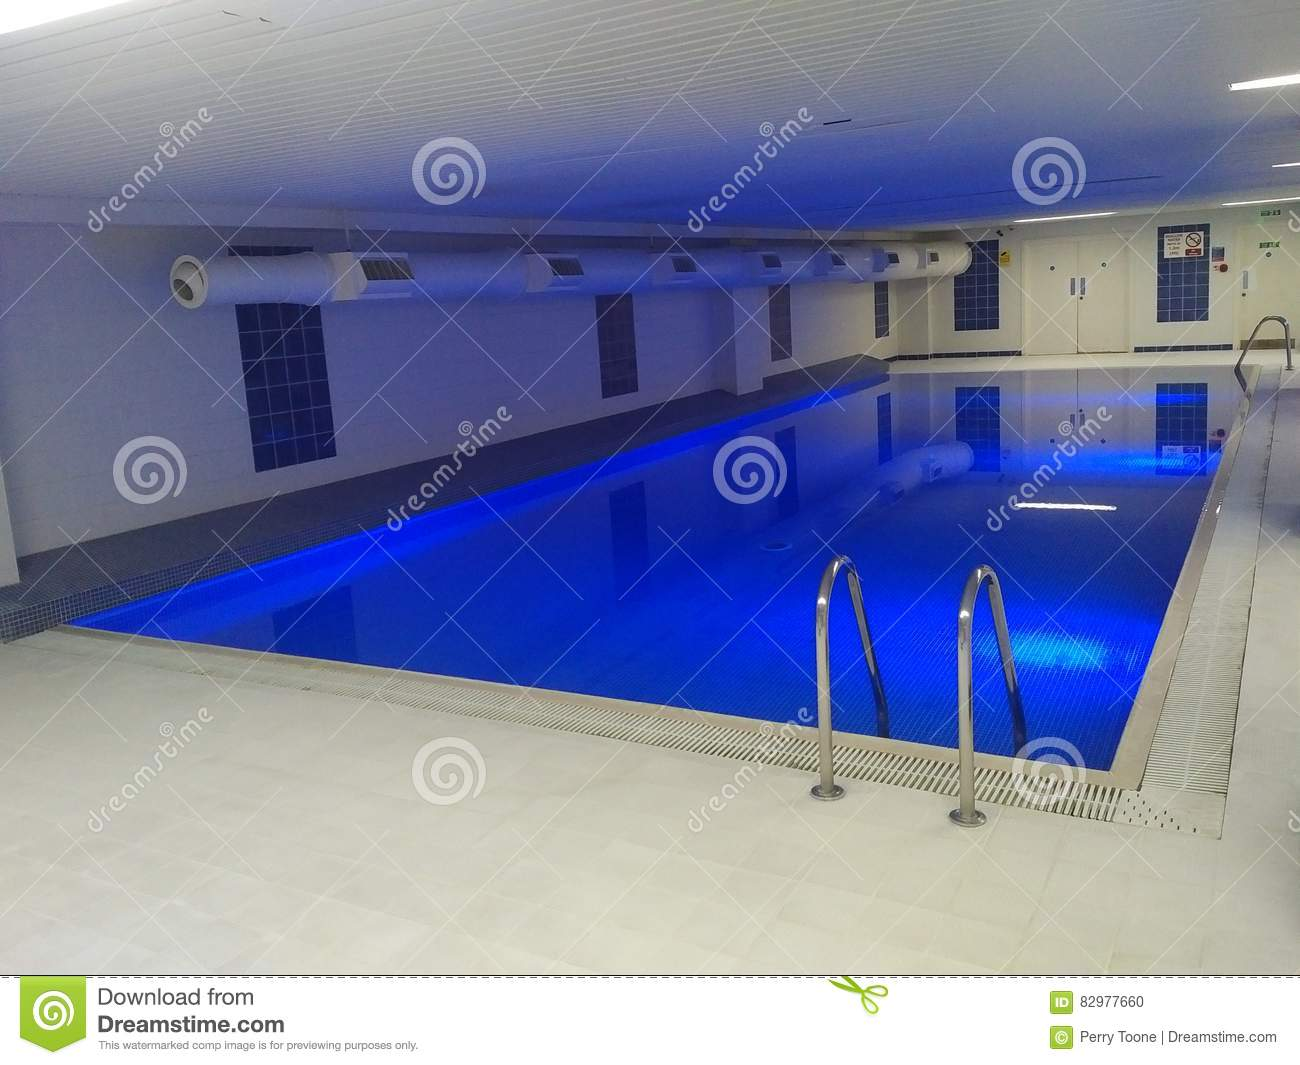 indoor swimming pool lighting. Indoor Swimming Pool Stock Photo. Image Of Lighting, Underground - 82977660 Lighting R